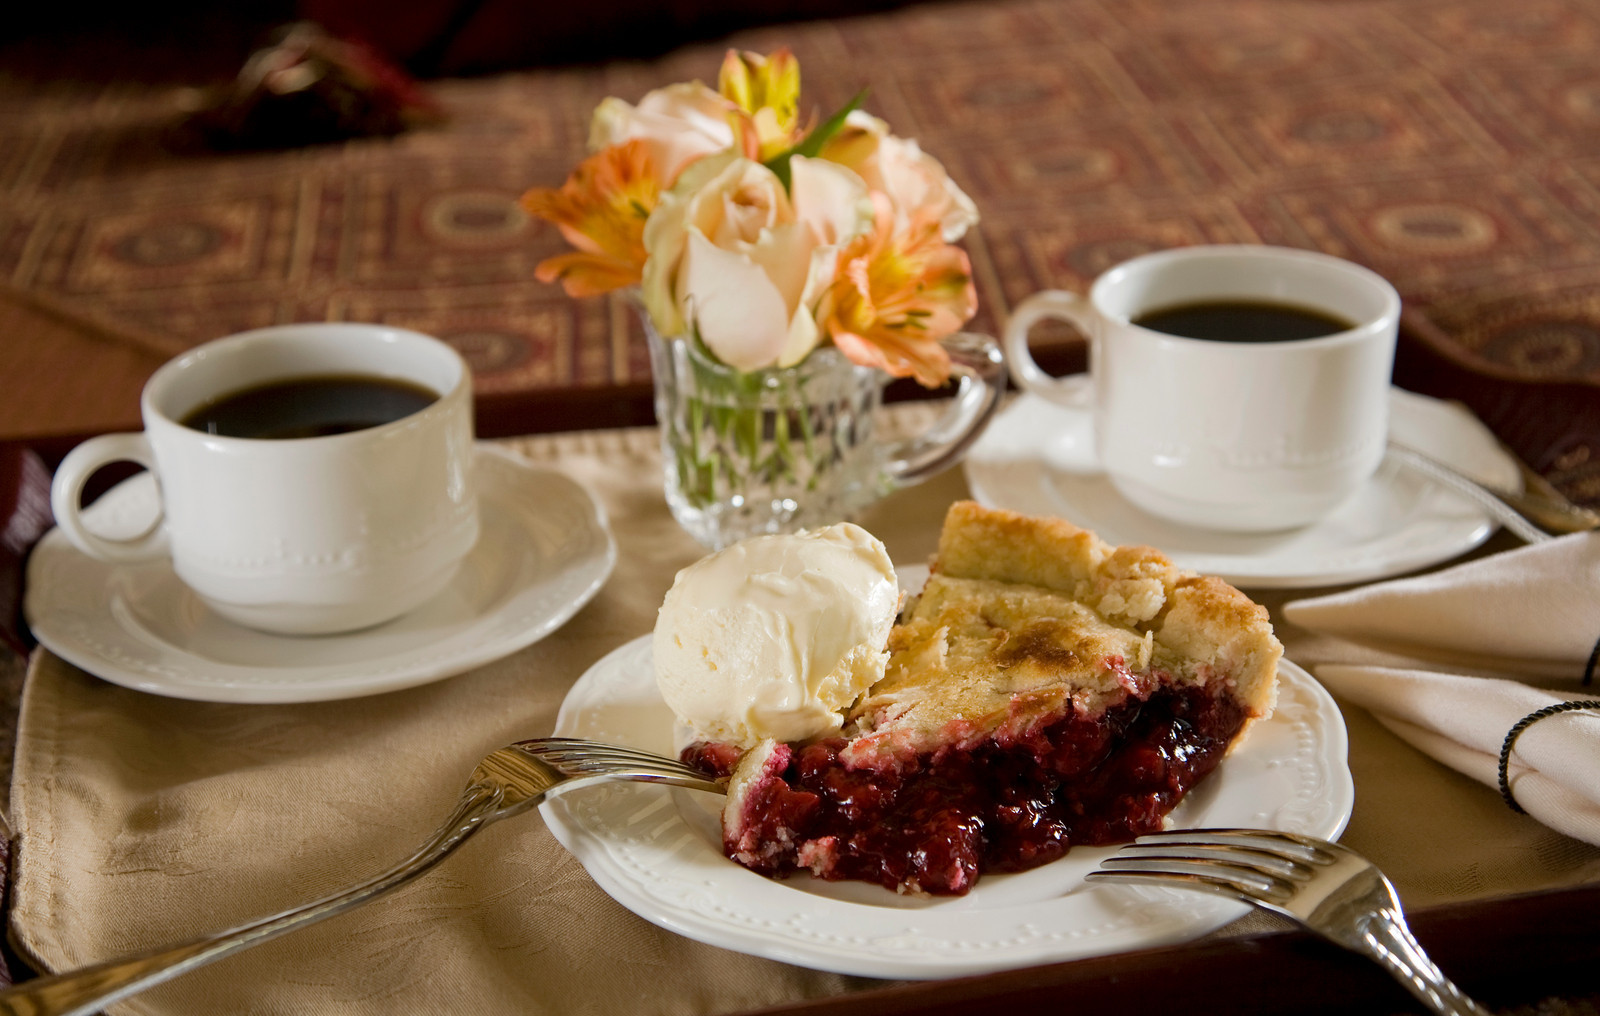 Homemade pie served every night at Berry Manor Inn.